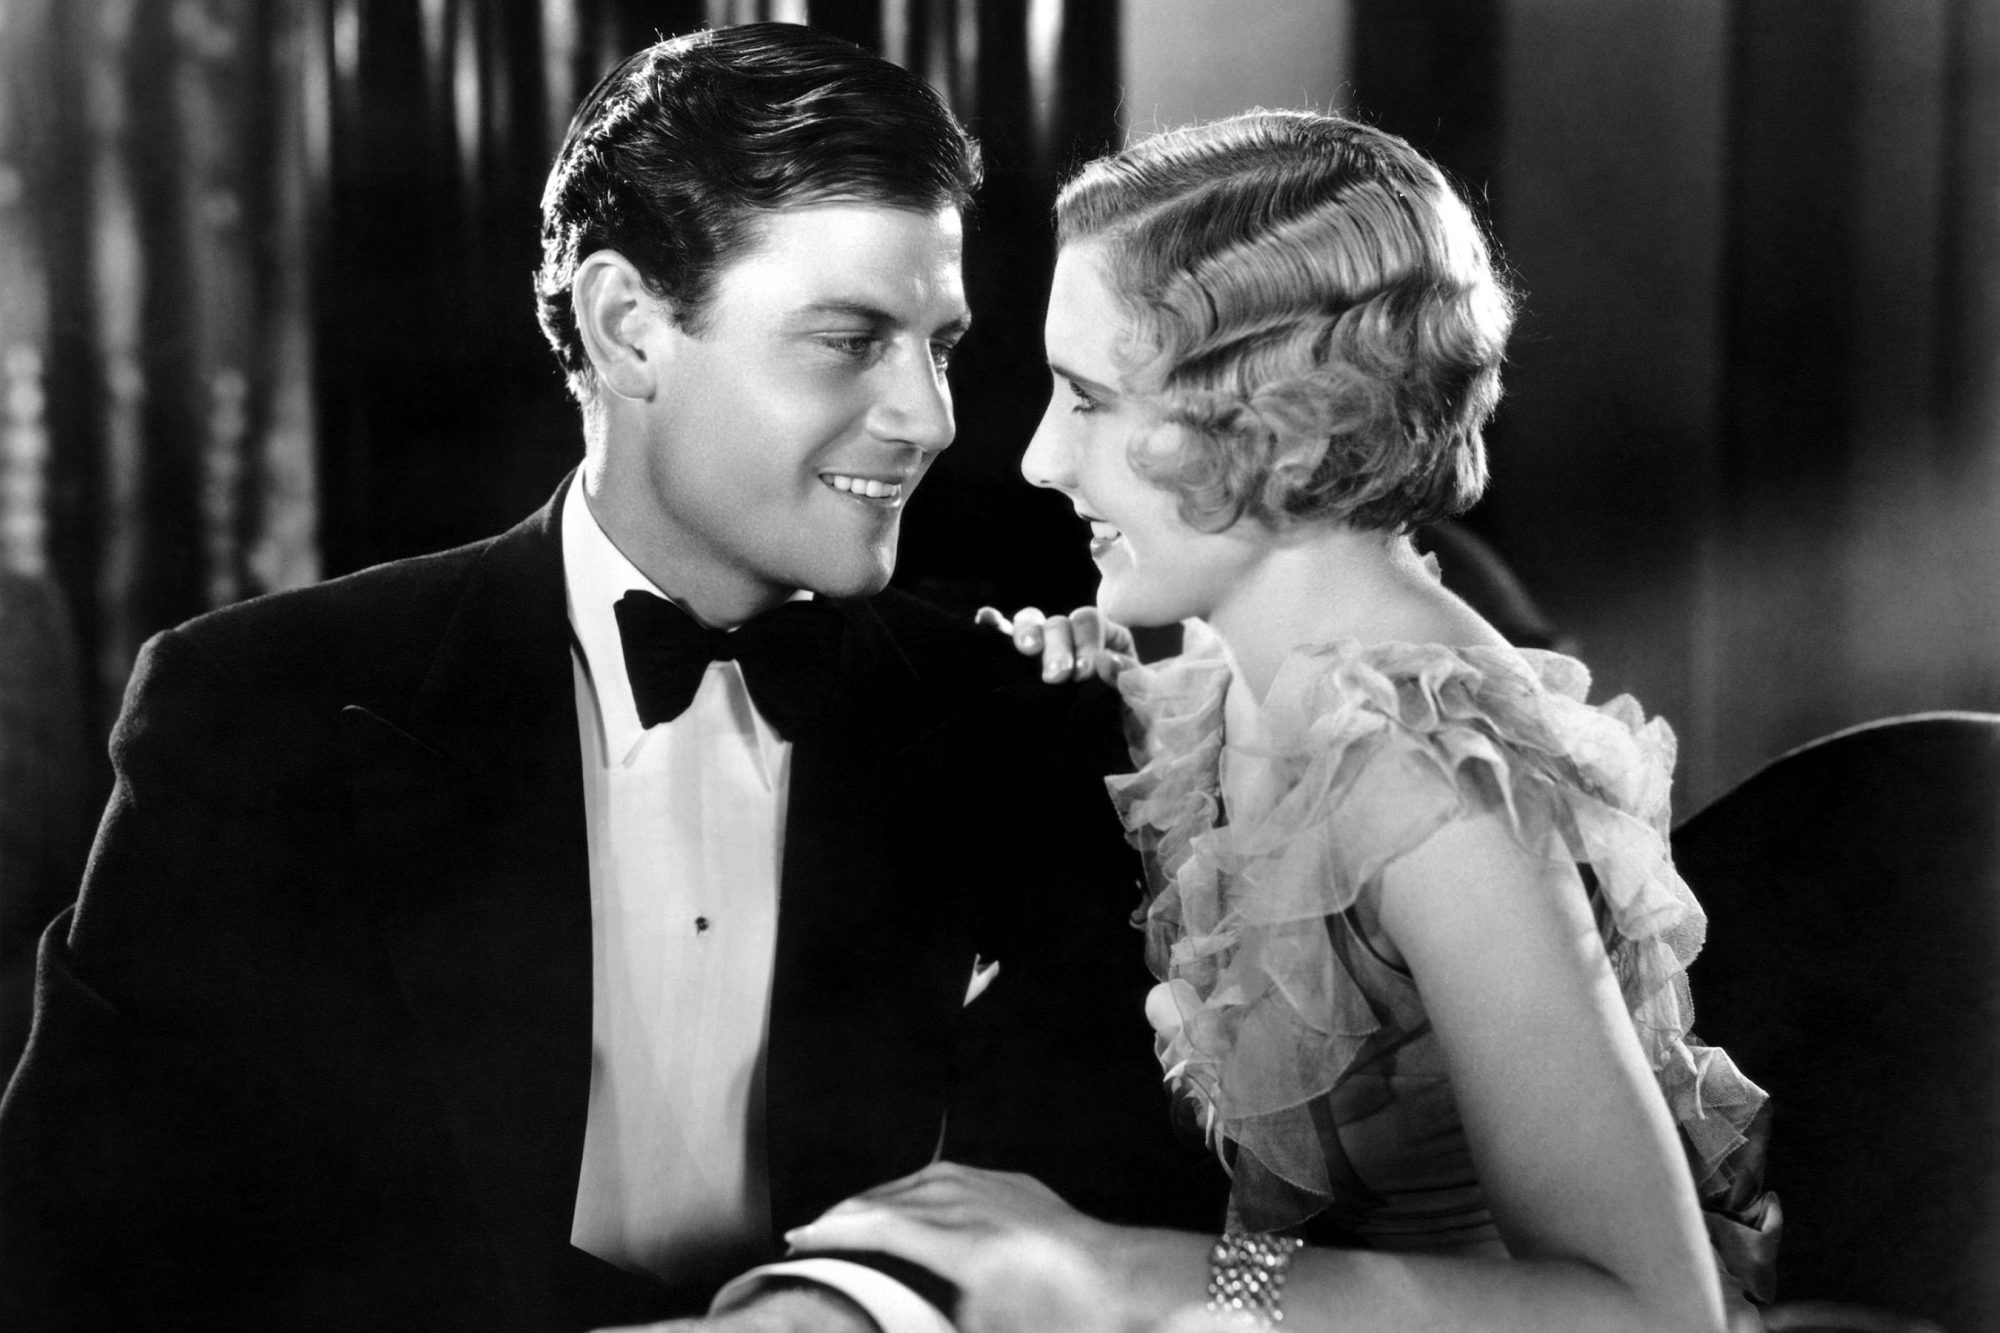 THE SILVER HORDE, from left, Joel McCrea, Jean Arthur, 1930